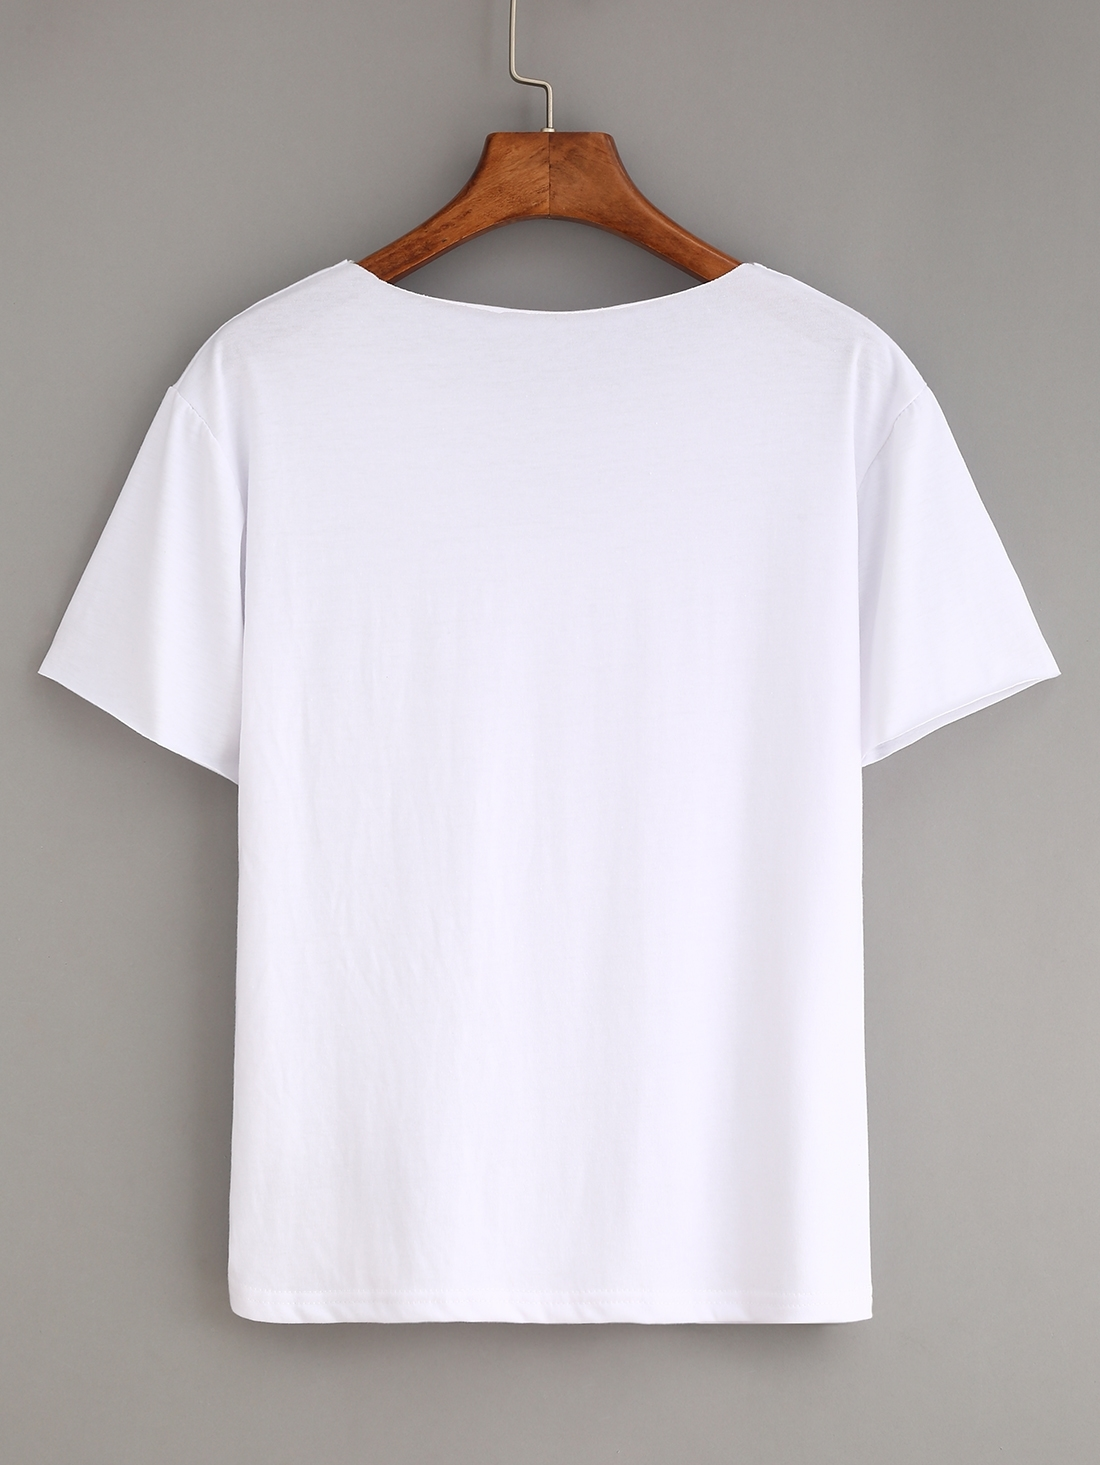 If you are searching for plain white t-shirts at cheap prices you have come to the right place. The color white is the most popular color in the t-shirt business because it is so flexible.